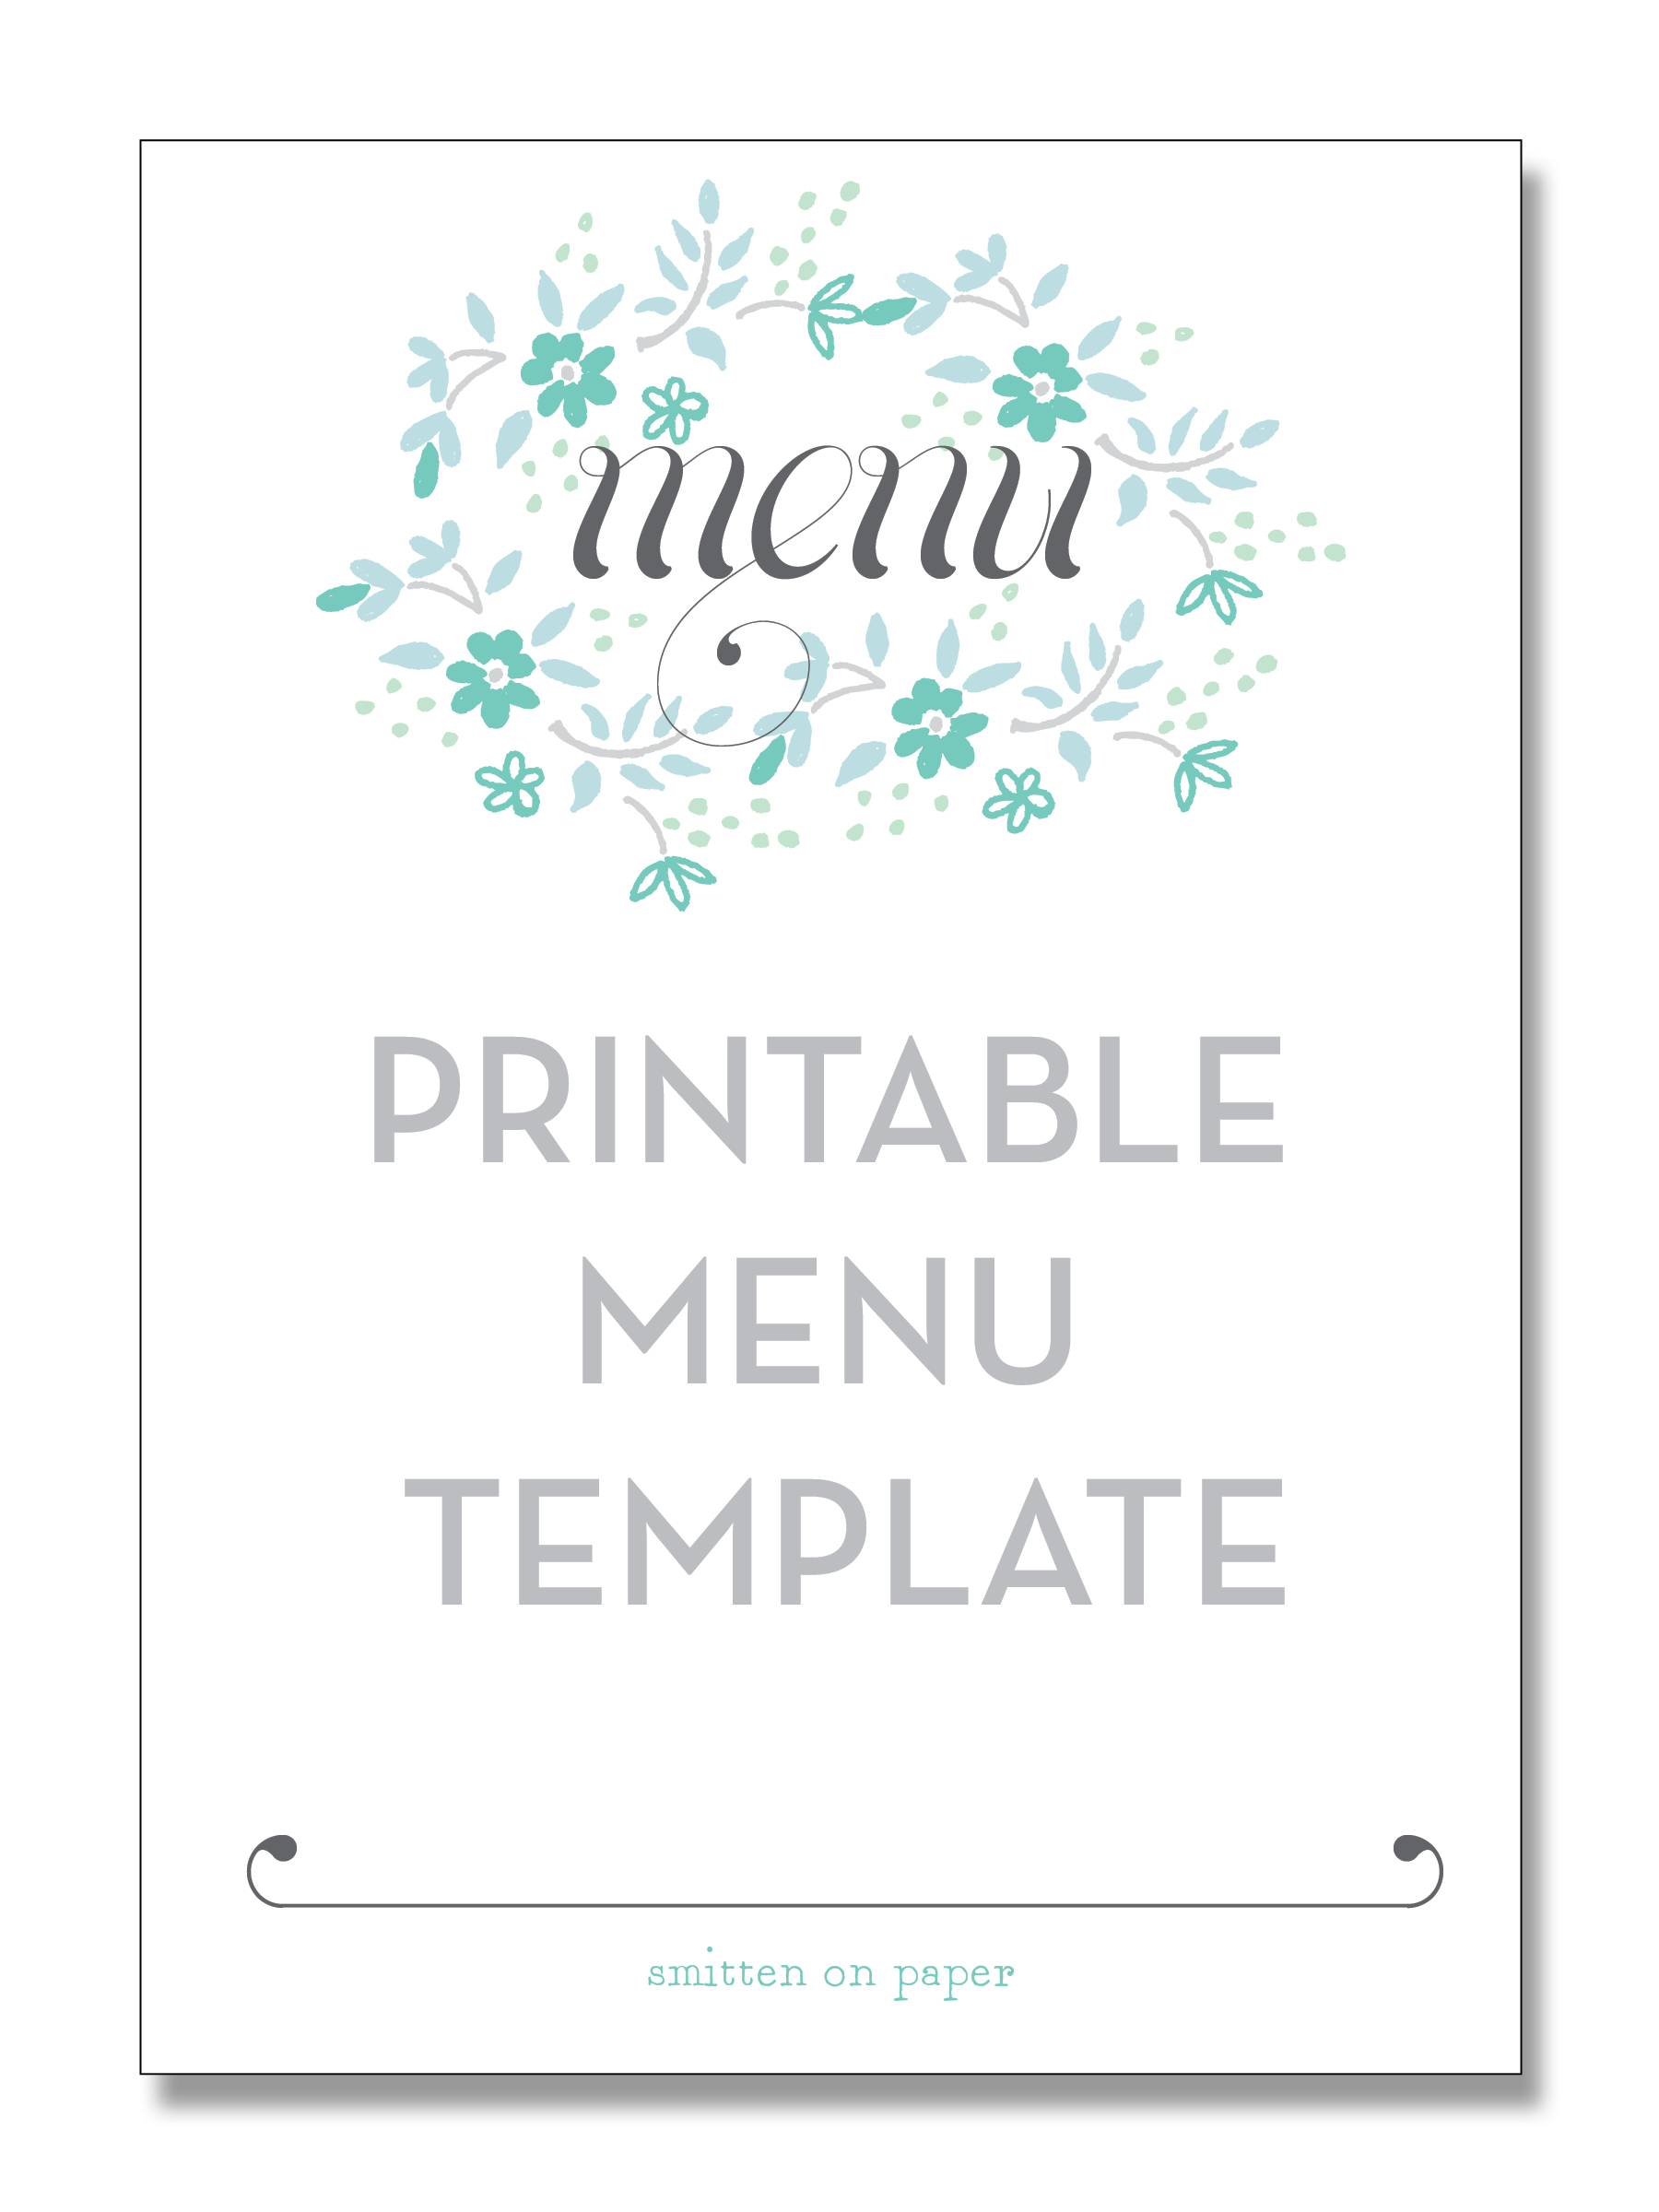 Menu Printable Images Gallery Category Page 1